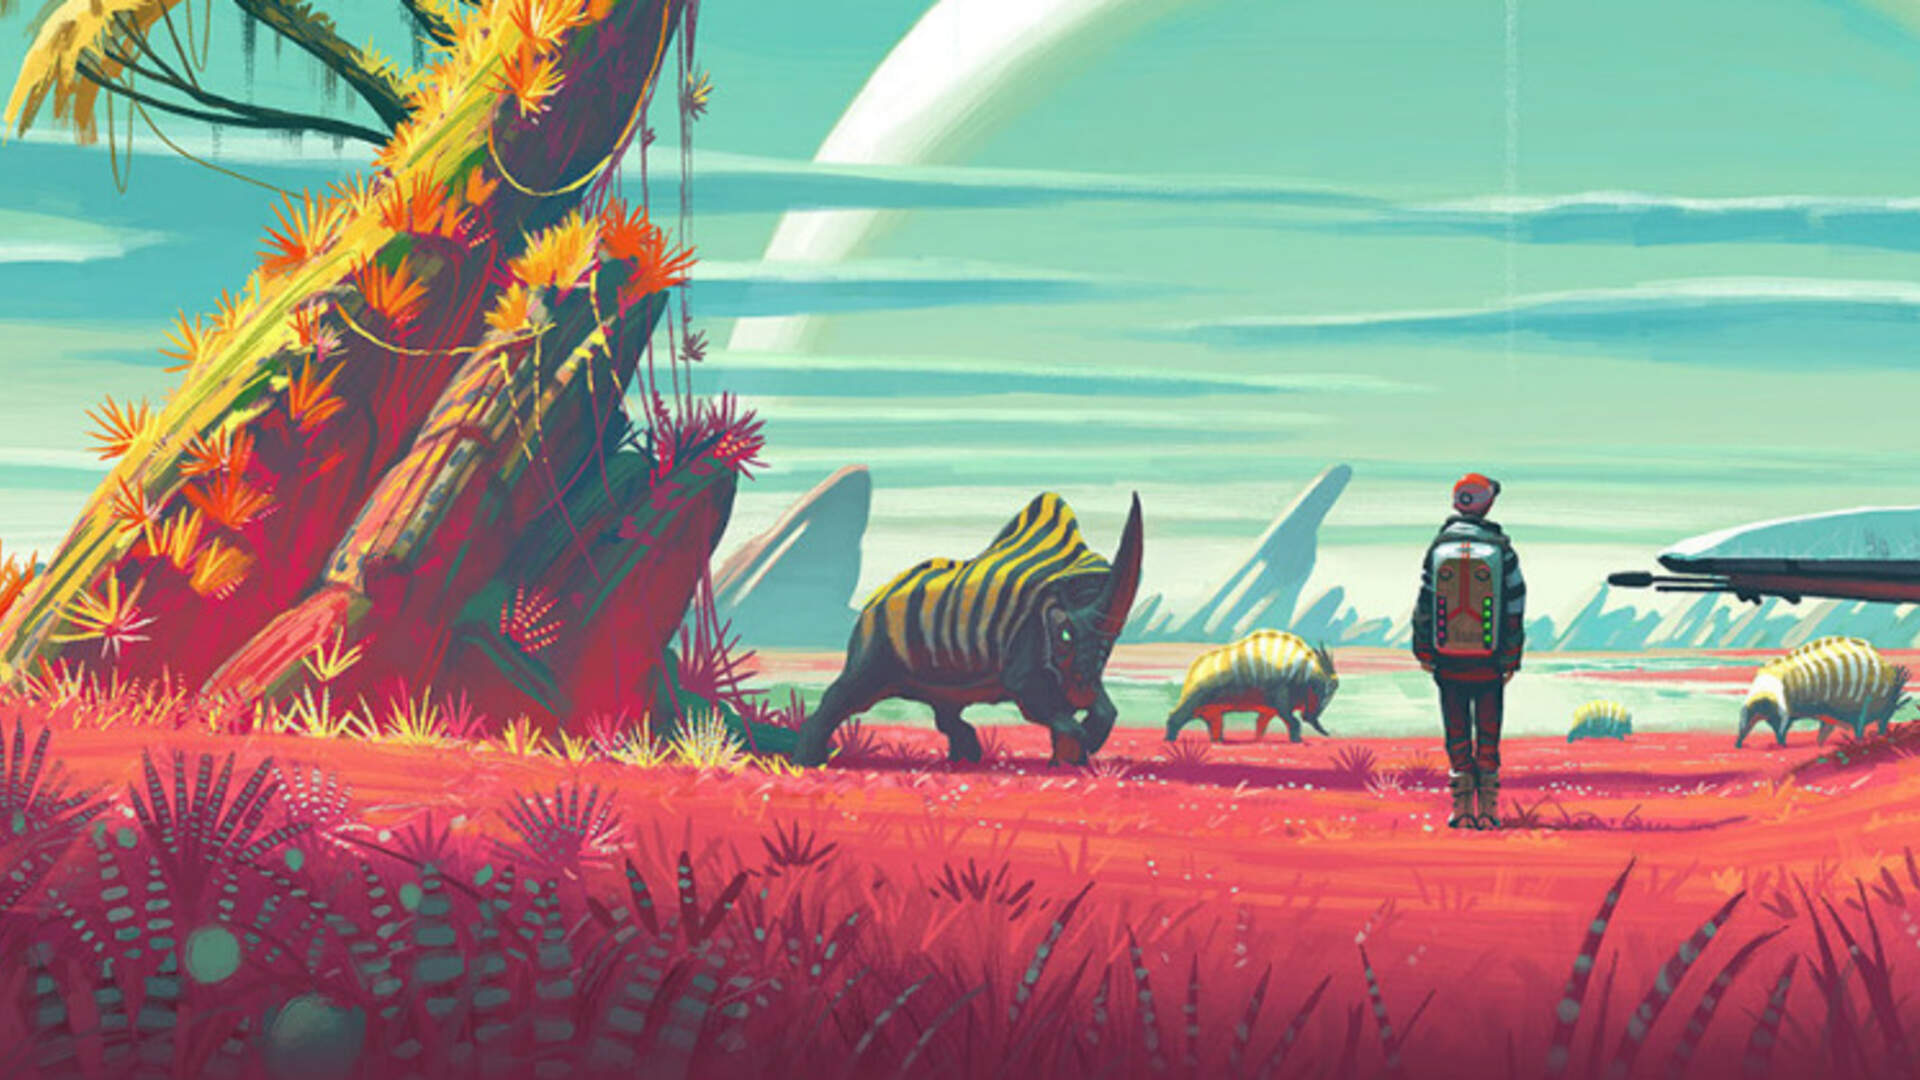 Everything You Need to Know About No Man's Sky: Our Review, Tips, and Analysis